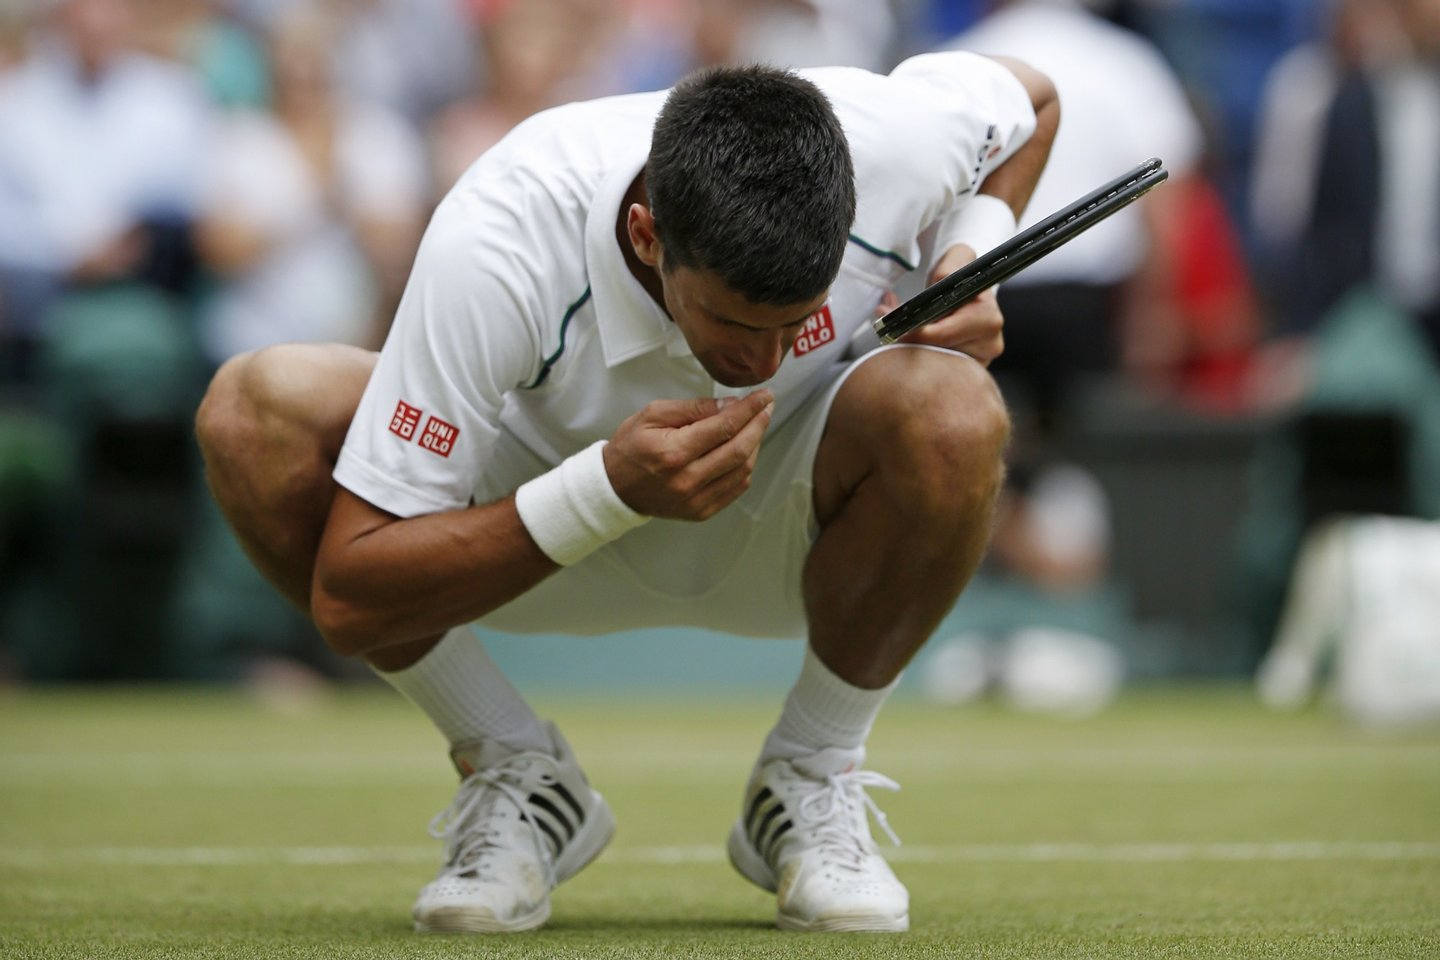 Serbia's Novak Djokovic celebrates beating Switzerland's Roger Federer by eating a blade of grass after their men's singles final match on Centre Court on day thirteen of the 2015 Wimbledon Championships at The All England Tennis Club in Wimbledon, southwest London, on July 12, 2015. Djokovic won the match 7-6, 6-7, 6-4, 6-3. RESTRICTED TO EDITORIAL USE  --  AFP PHOTO / ADRIAN DENNIS        (Photo credit should read ADRIAN DENNIS/AFP/Getty Images)